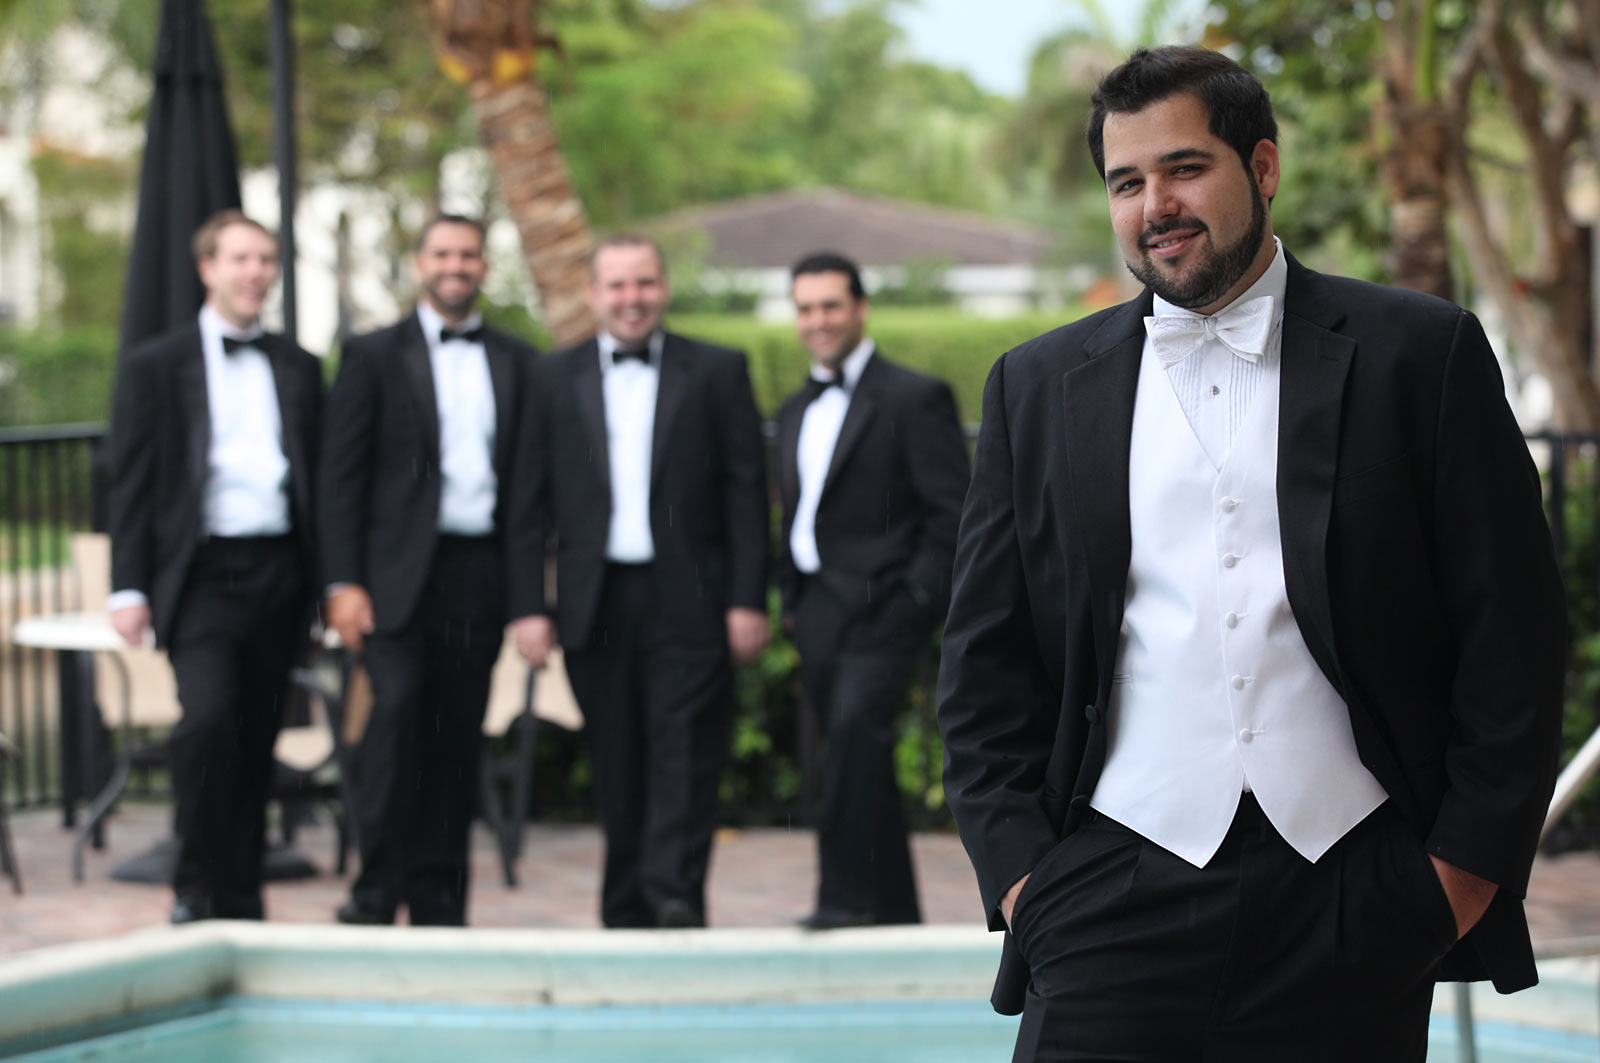 Smiling Groom with Groomsmen, Father of Bride, Koumbaro, Man of Honor, Ring Bearer, Ushers